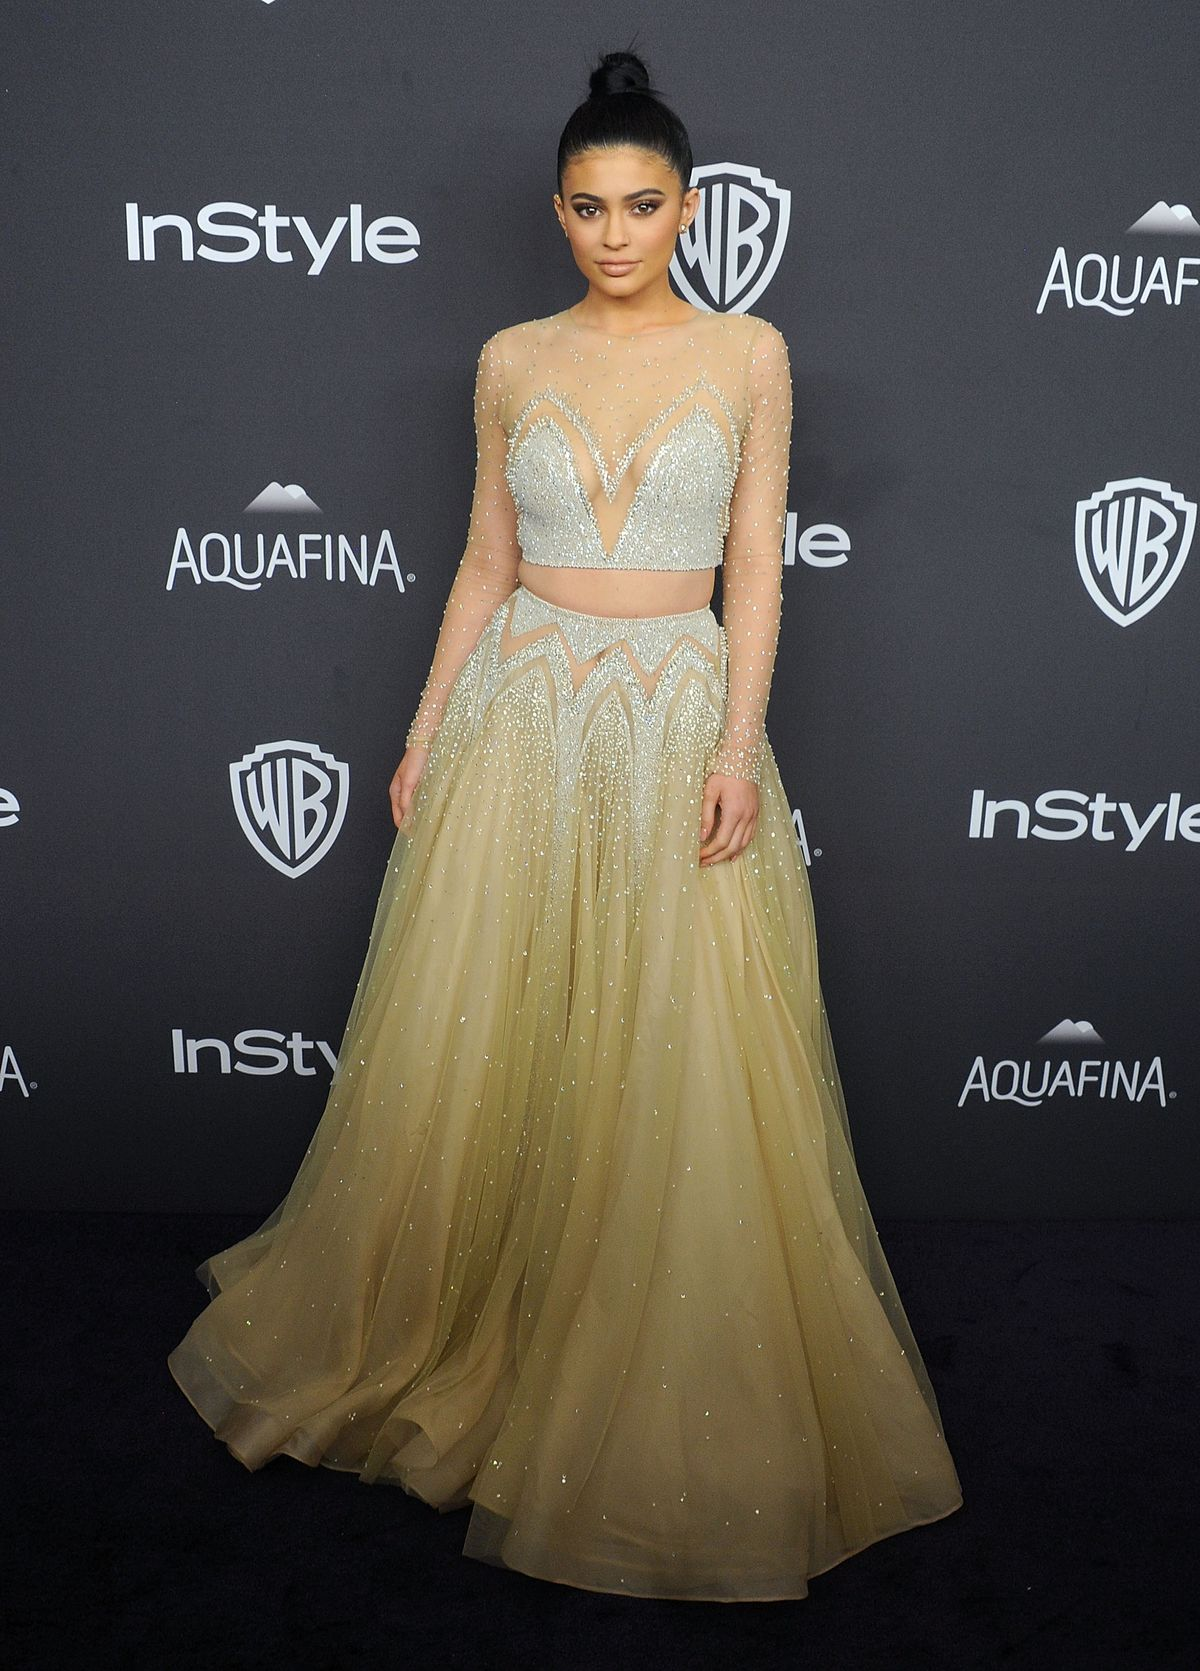 BEVERLY HILLS, CA - JANUARY 10: Kylie Jenner arrives at the 2016 InStyle And Warner Bros. 73rd Annual Golden Globe Awards Post-Party at The Beverly Hilton Hotel on January 10, 2016 in Beverly Hills, California. (Photo by Gregg DeGuire/WireImage)